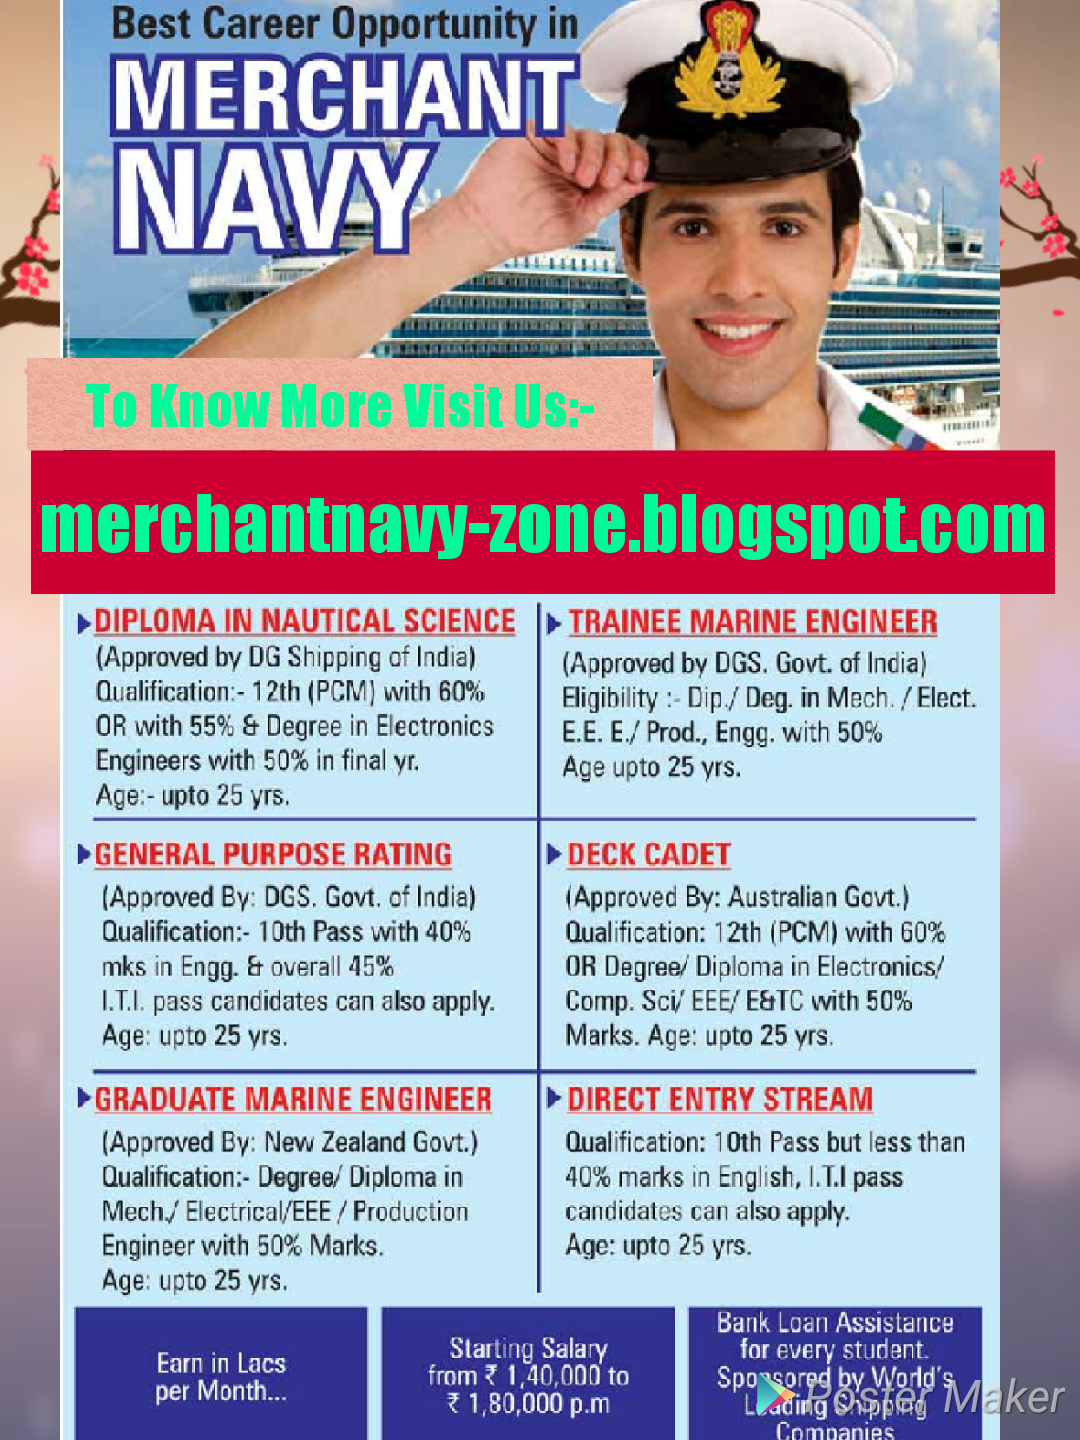 What is the salary of Indian seafarers in merchant navy